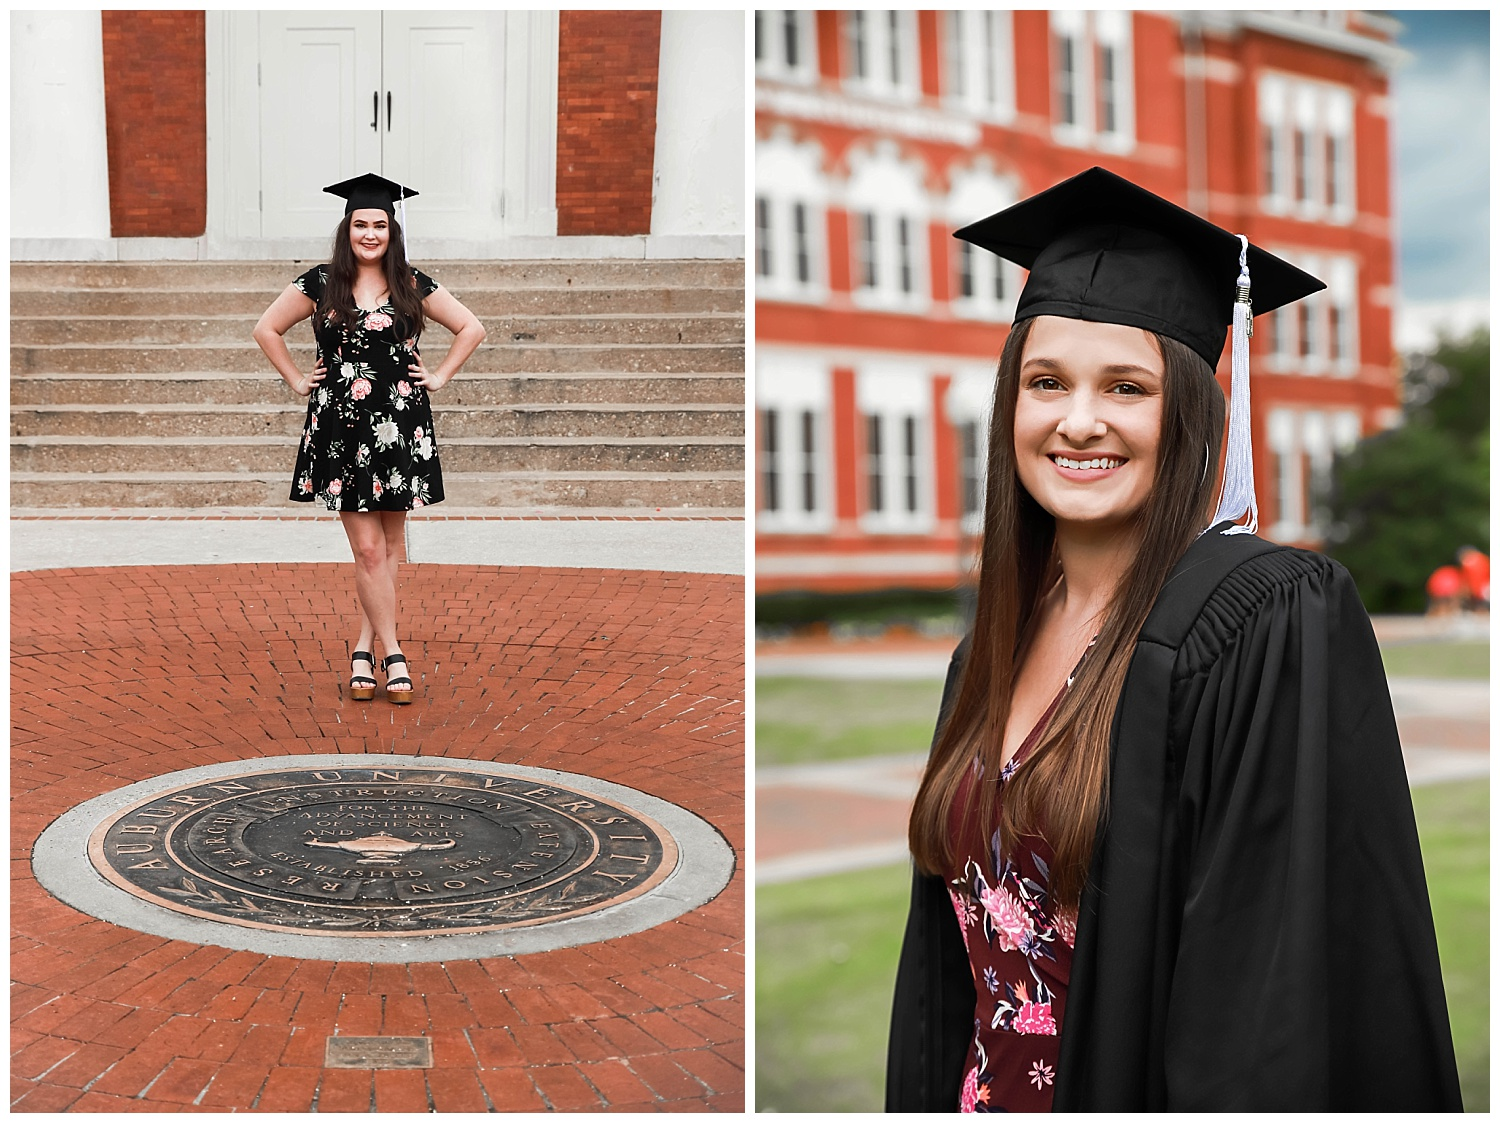 auburn university graduation photographer lbeesleyphoto